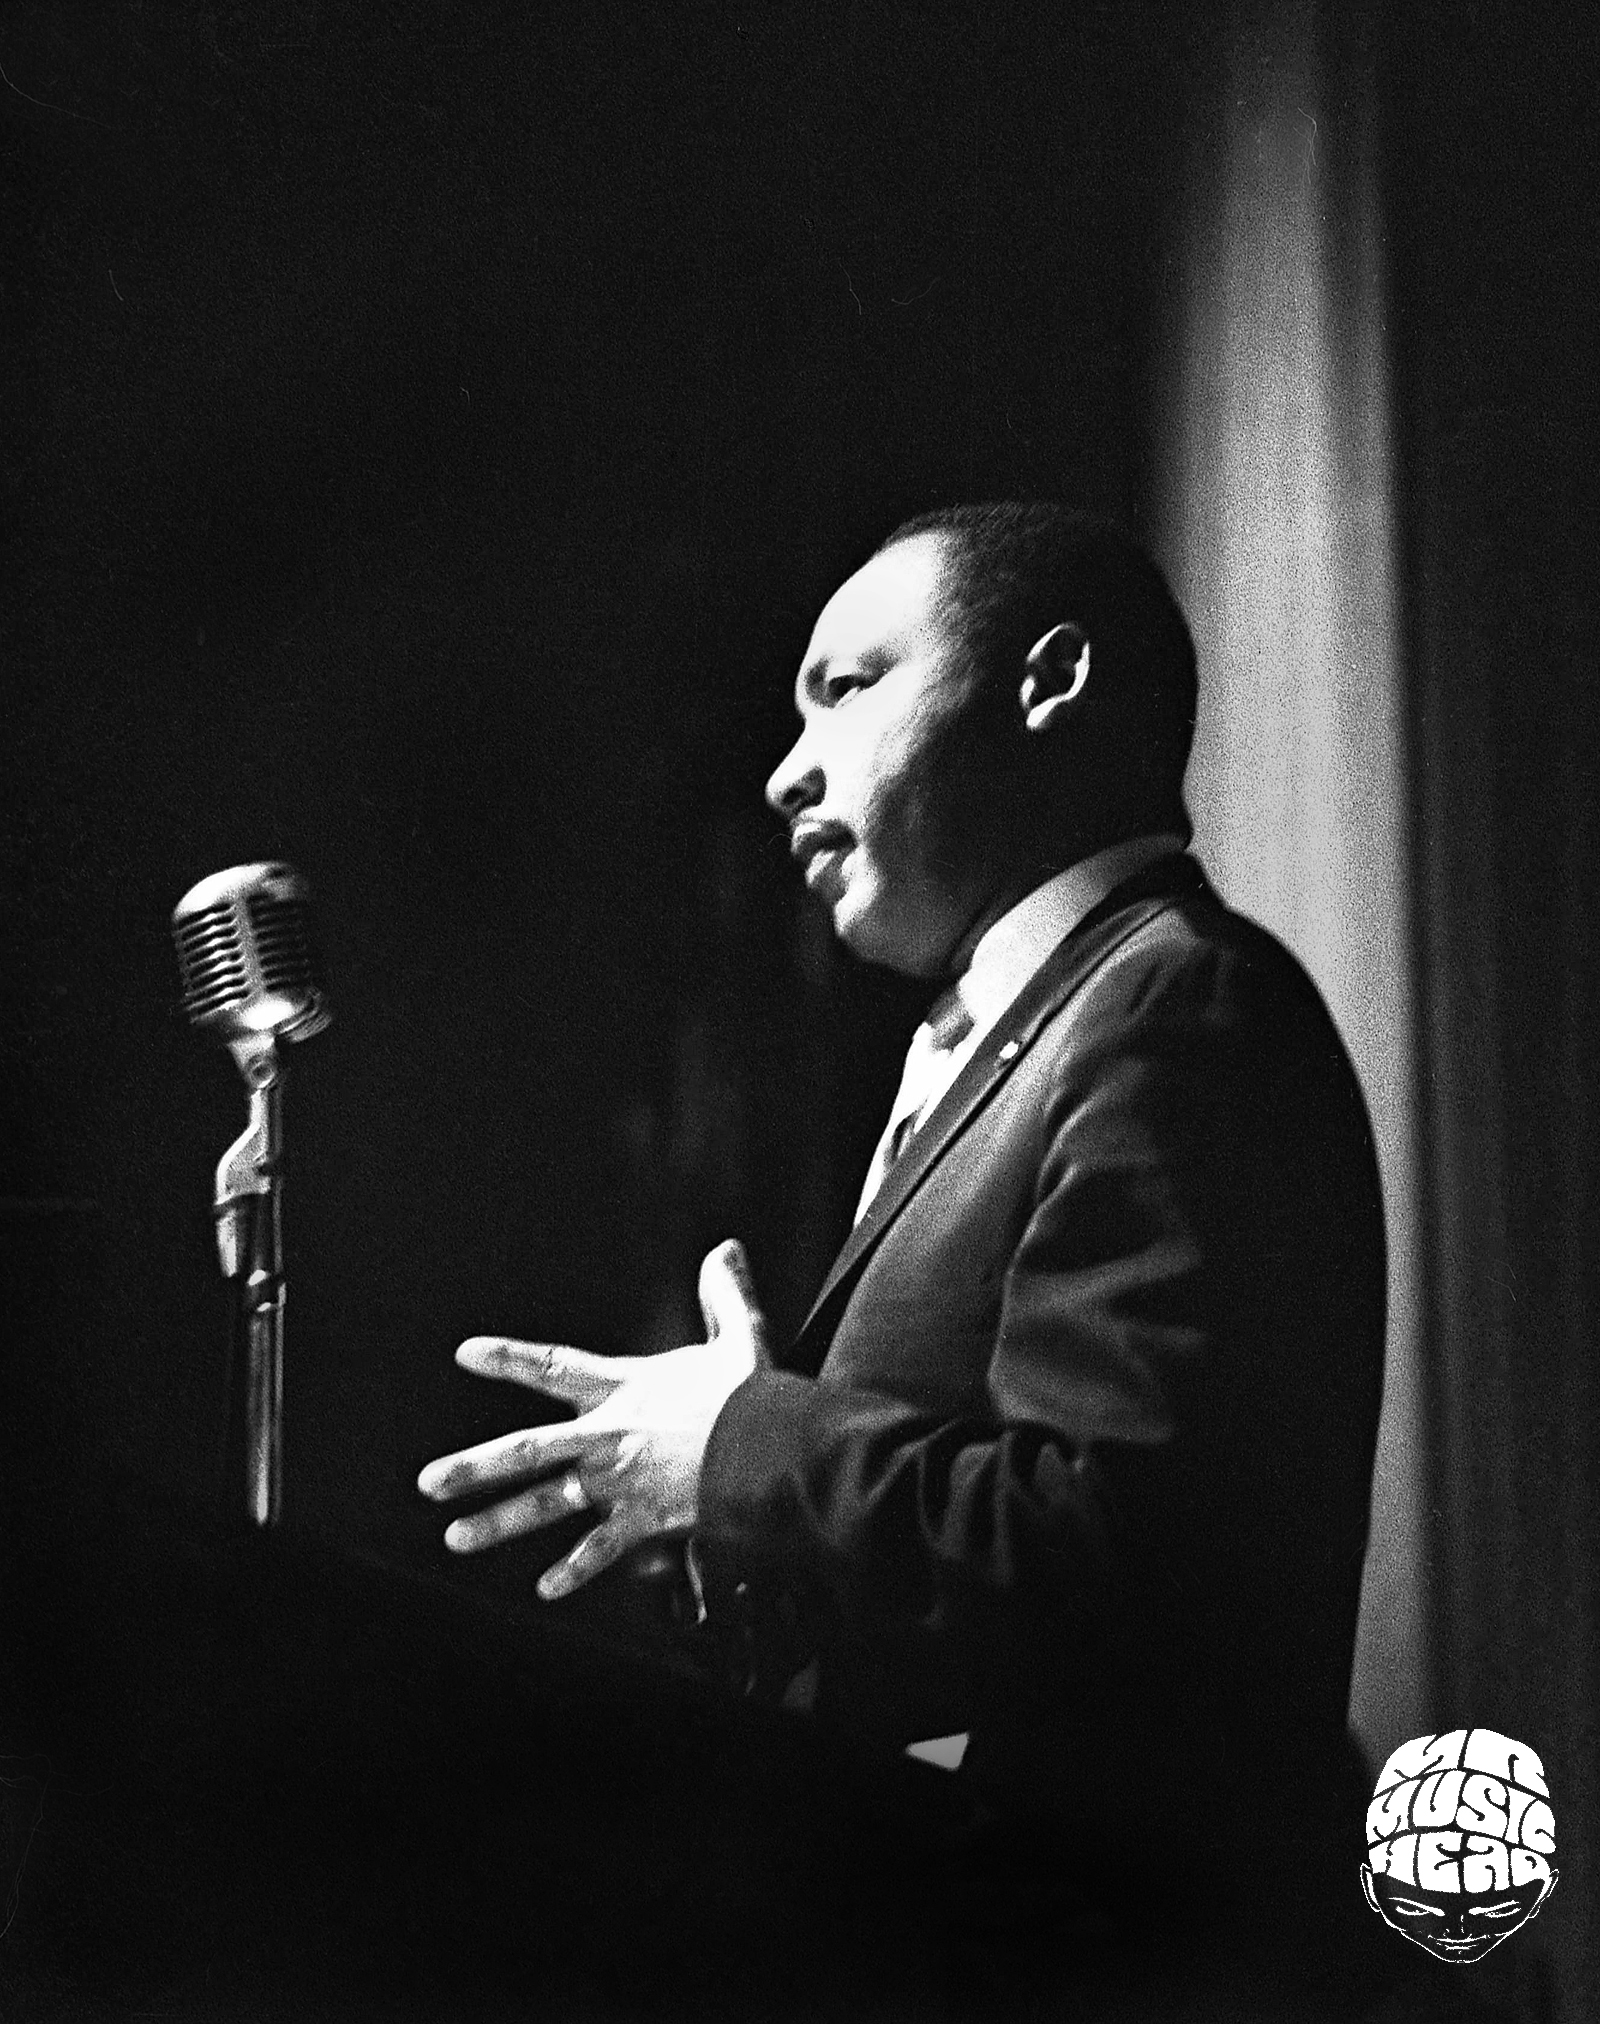 peter simon_MLK.jpg